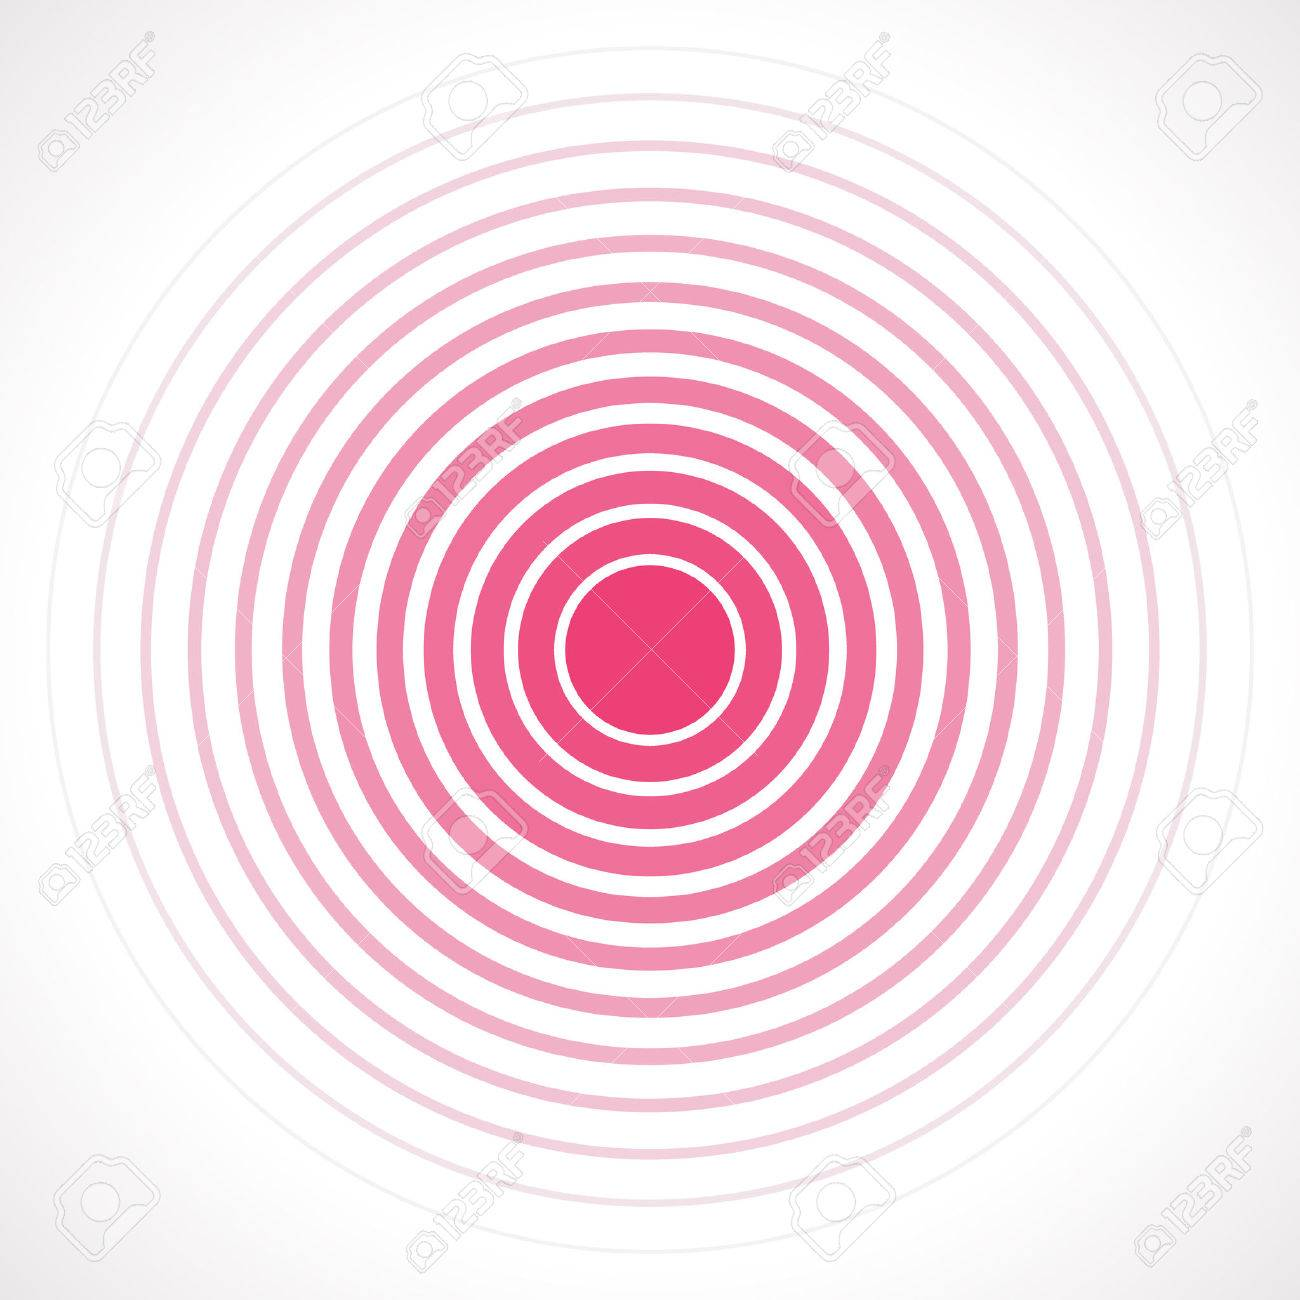 Concentric circle elements. Vector illustration for sound wave. Red and white color ring. Circle spin target. Radio station signal. Center minimal radial ripple line outline abstractionism - 53984873